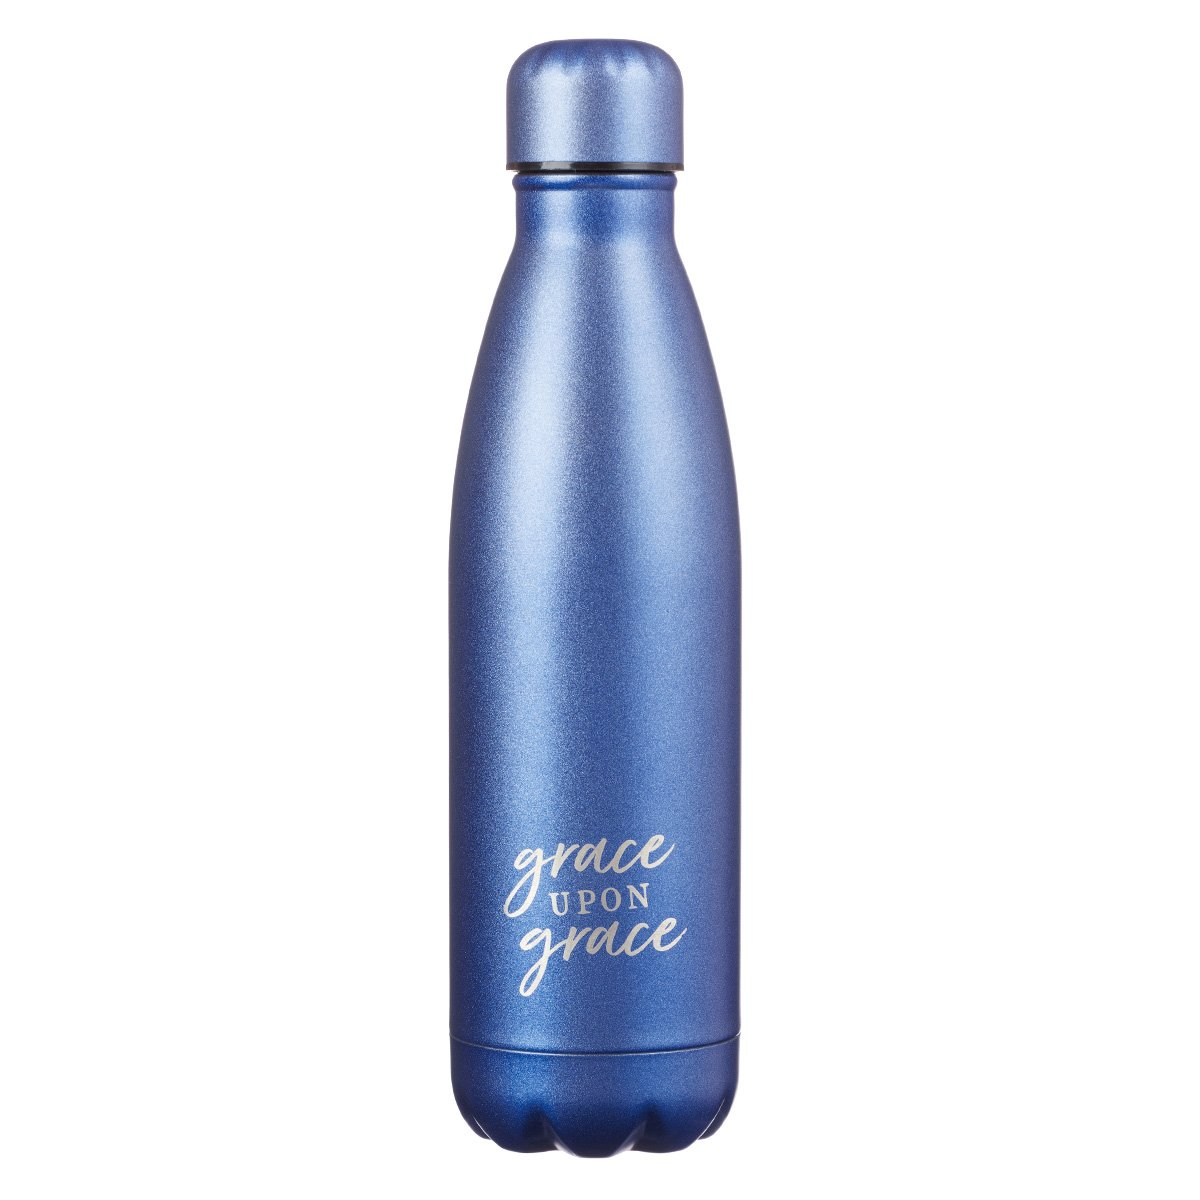 Stainless Steel Water Bottle: Grace Upon Grace